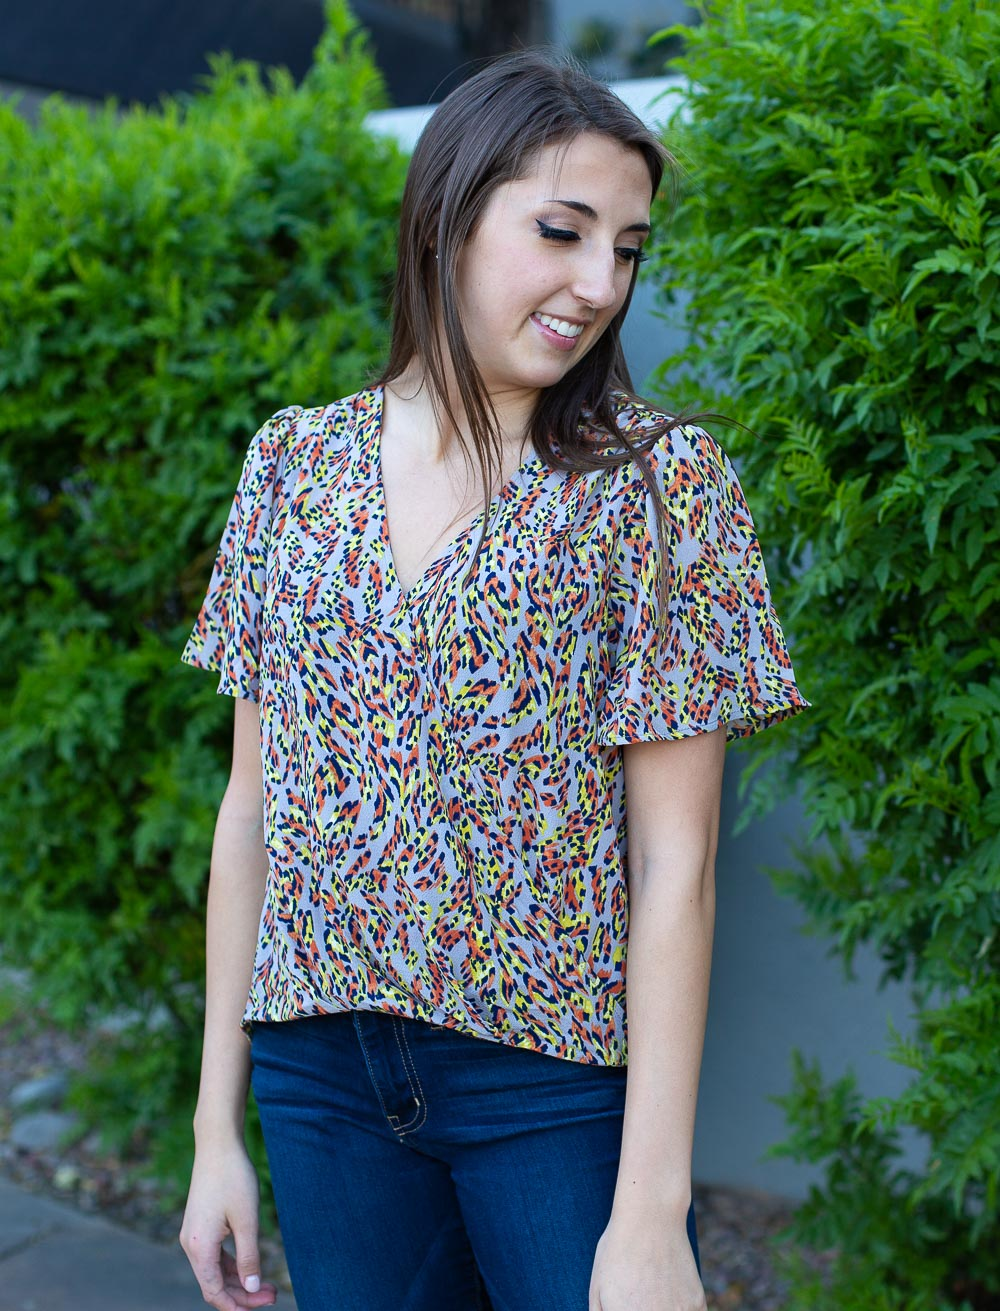 Cross front wrap top with high-low hemline, flutter sleeves and colorful abstract print